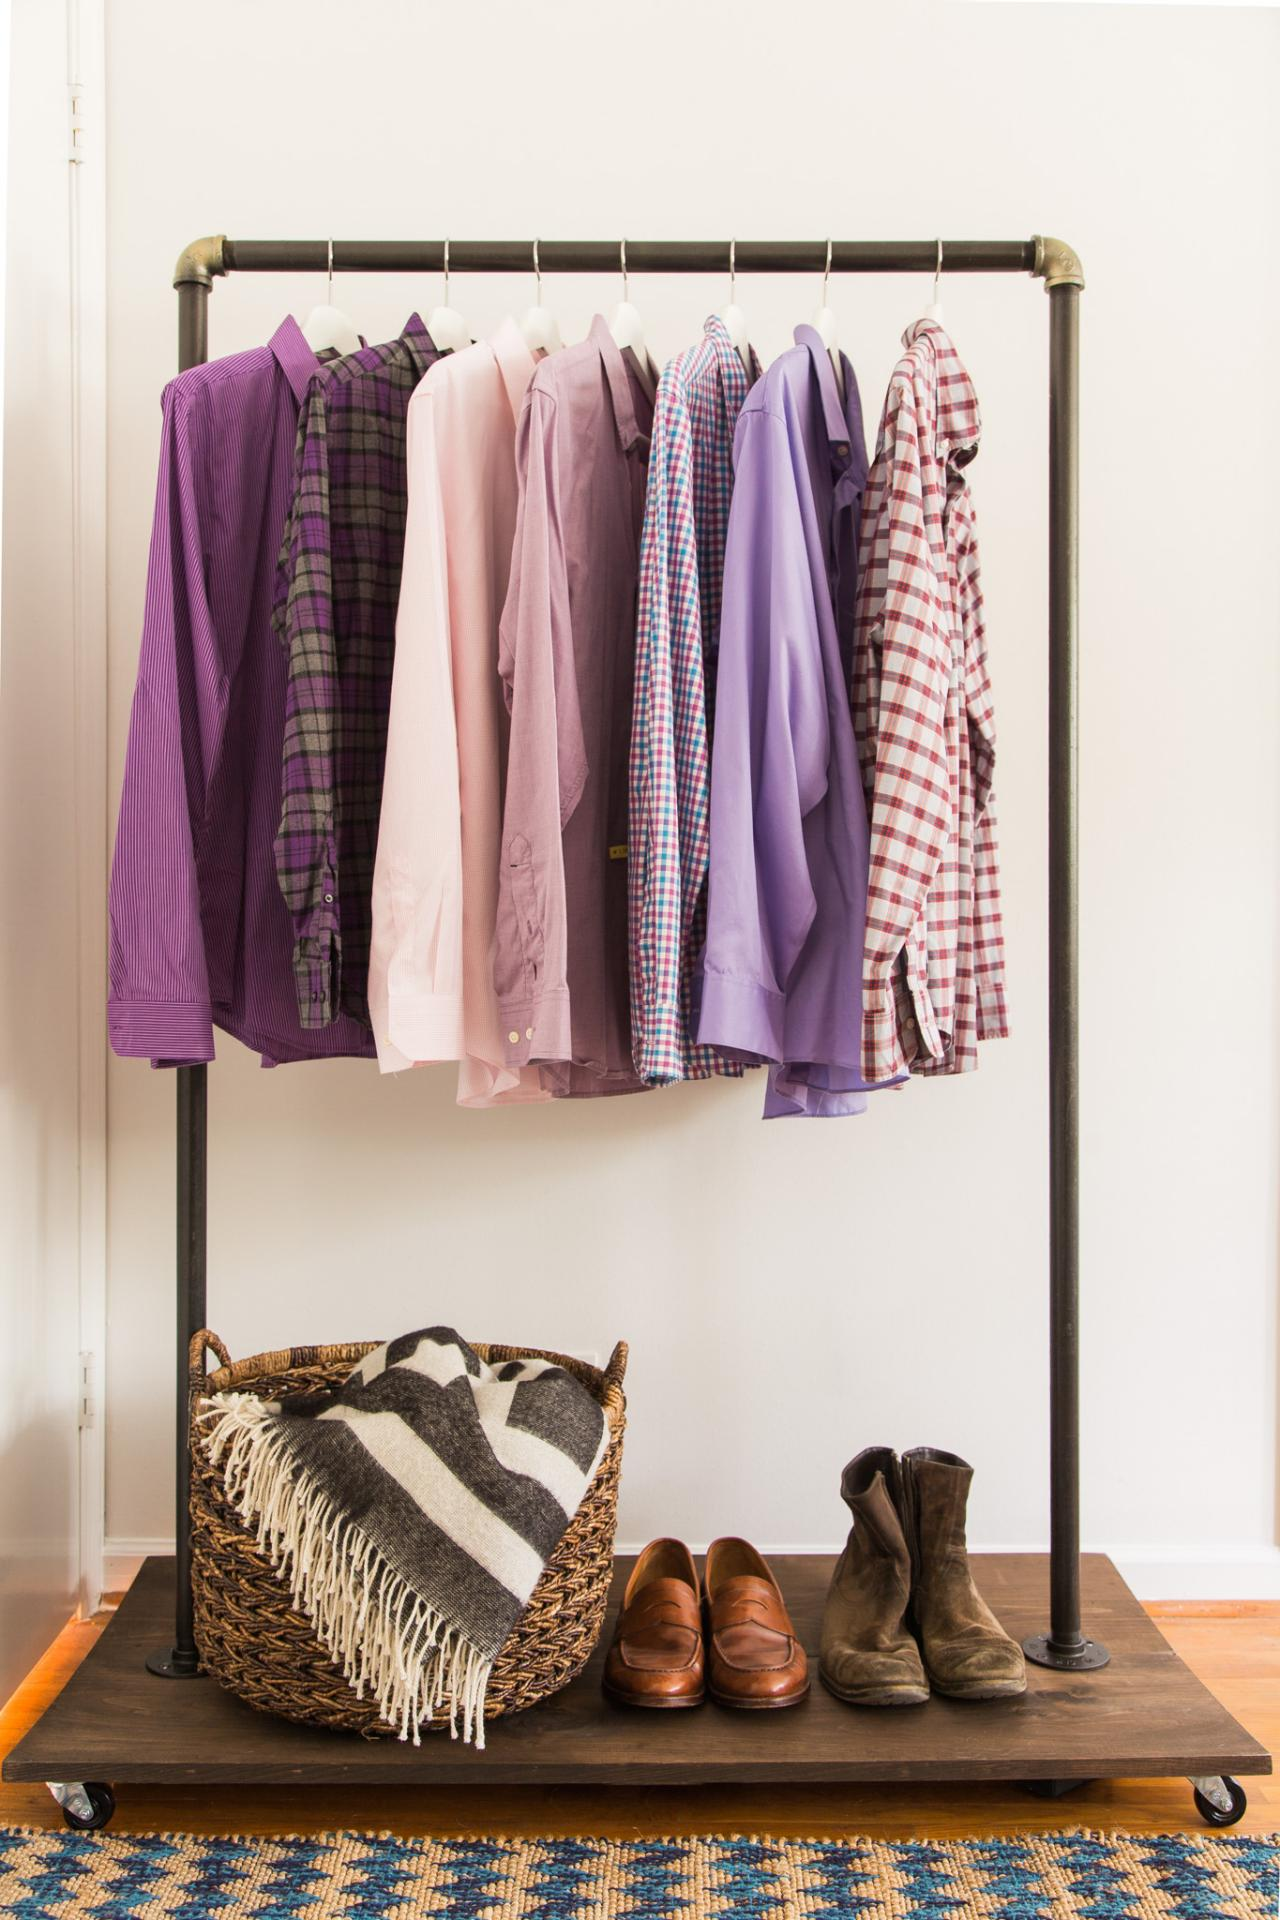 Diy Clothing Rack How To Make A Mobile Clothing Rack Hgtv